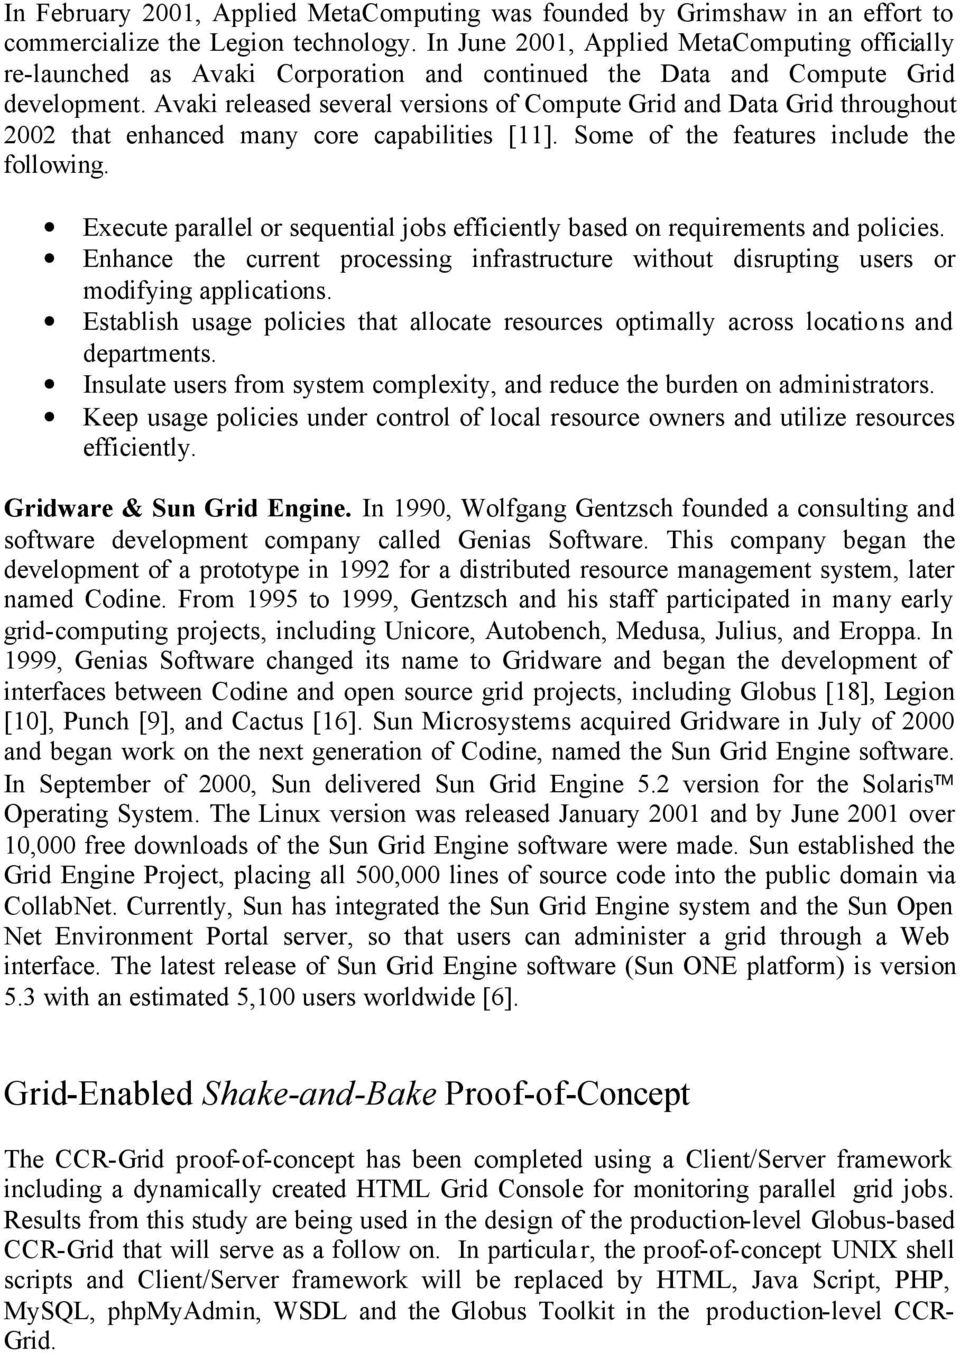 Avaki released several versions of Compute Grid and Data Grid throughout 2002 that enhanced many core capabilities [11]. Some of the features include the following.